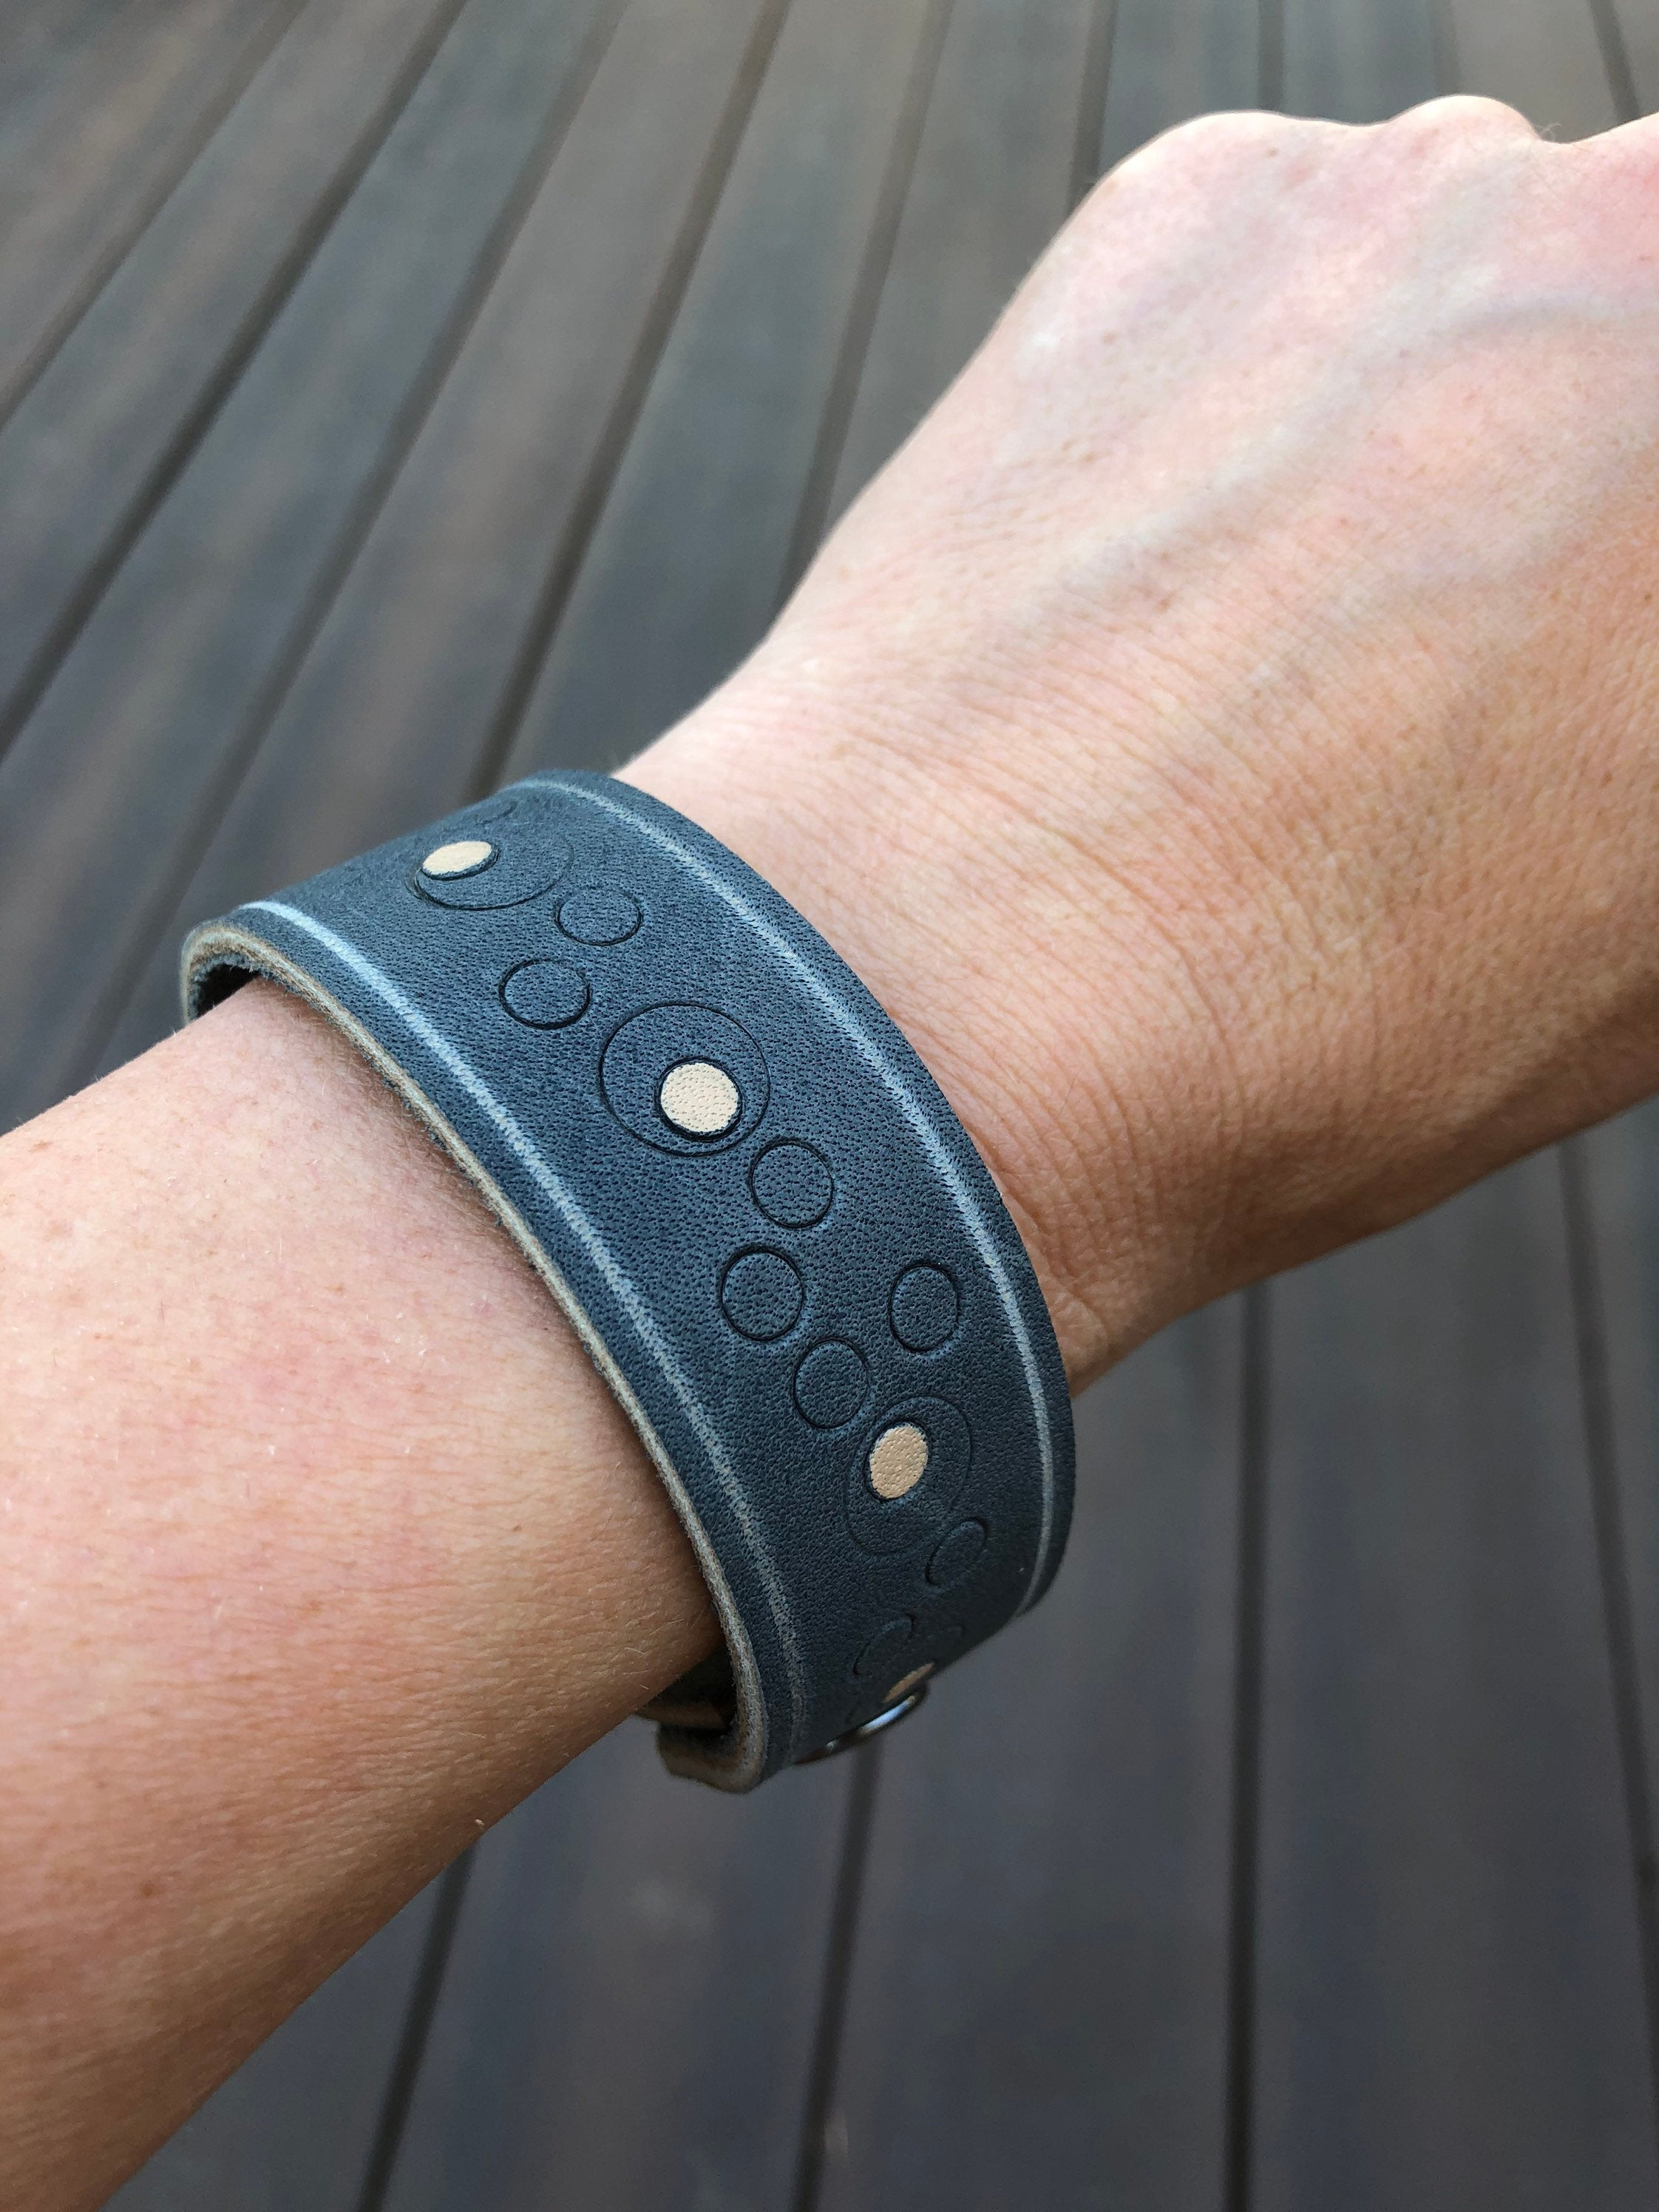 Blue leather cuff bracelet with pattern detail shown on model's wrist